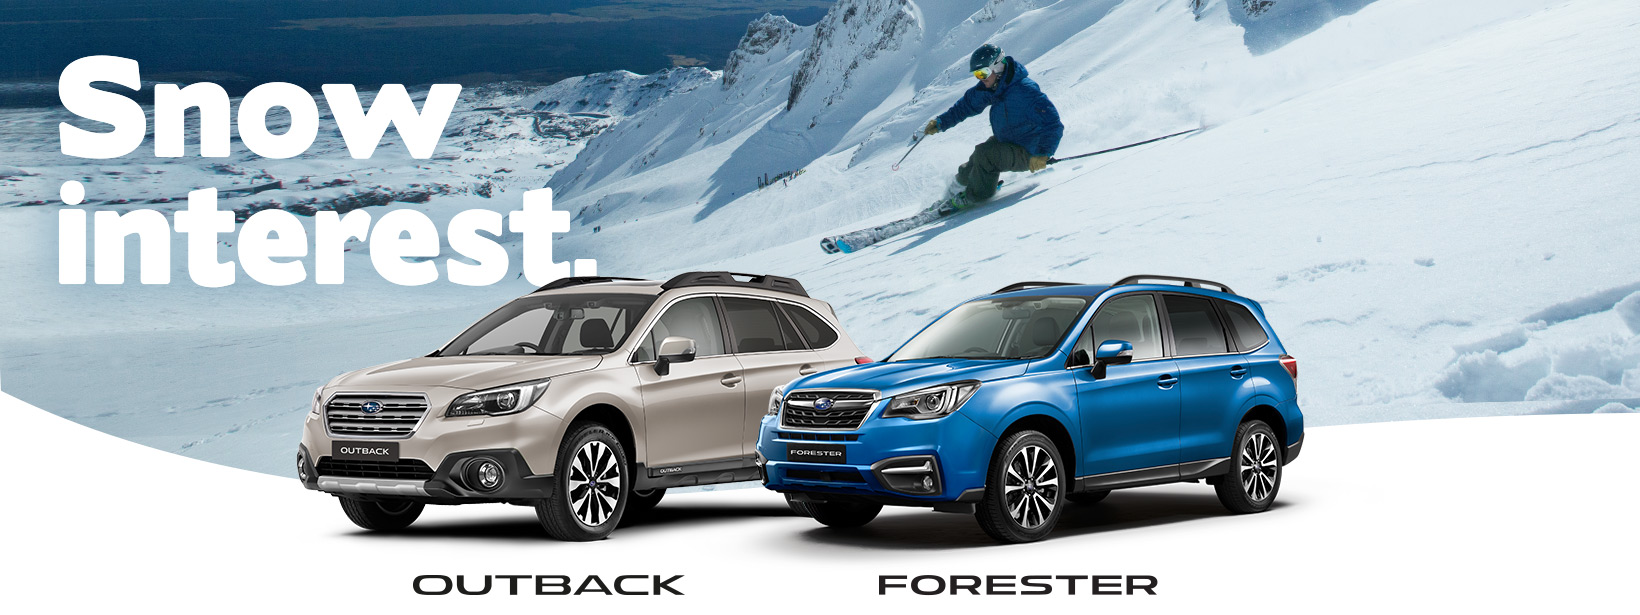 Subaru Snow Interest Promo